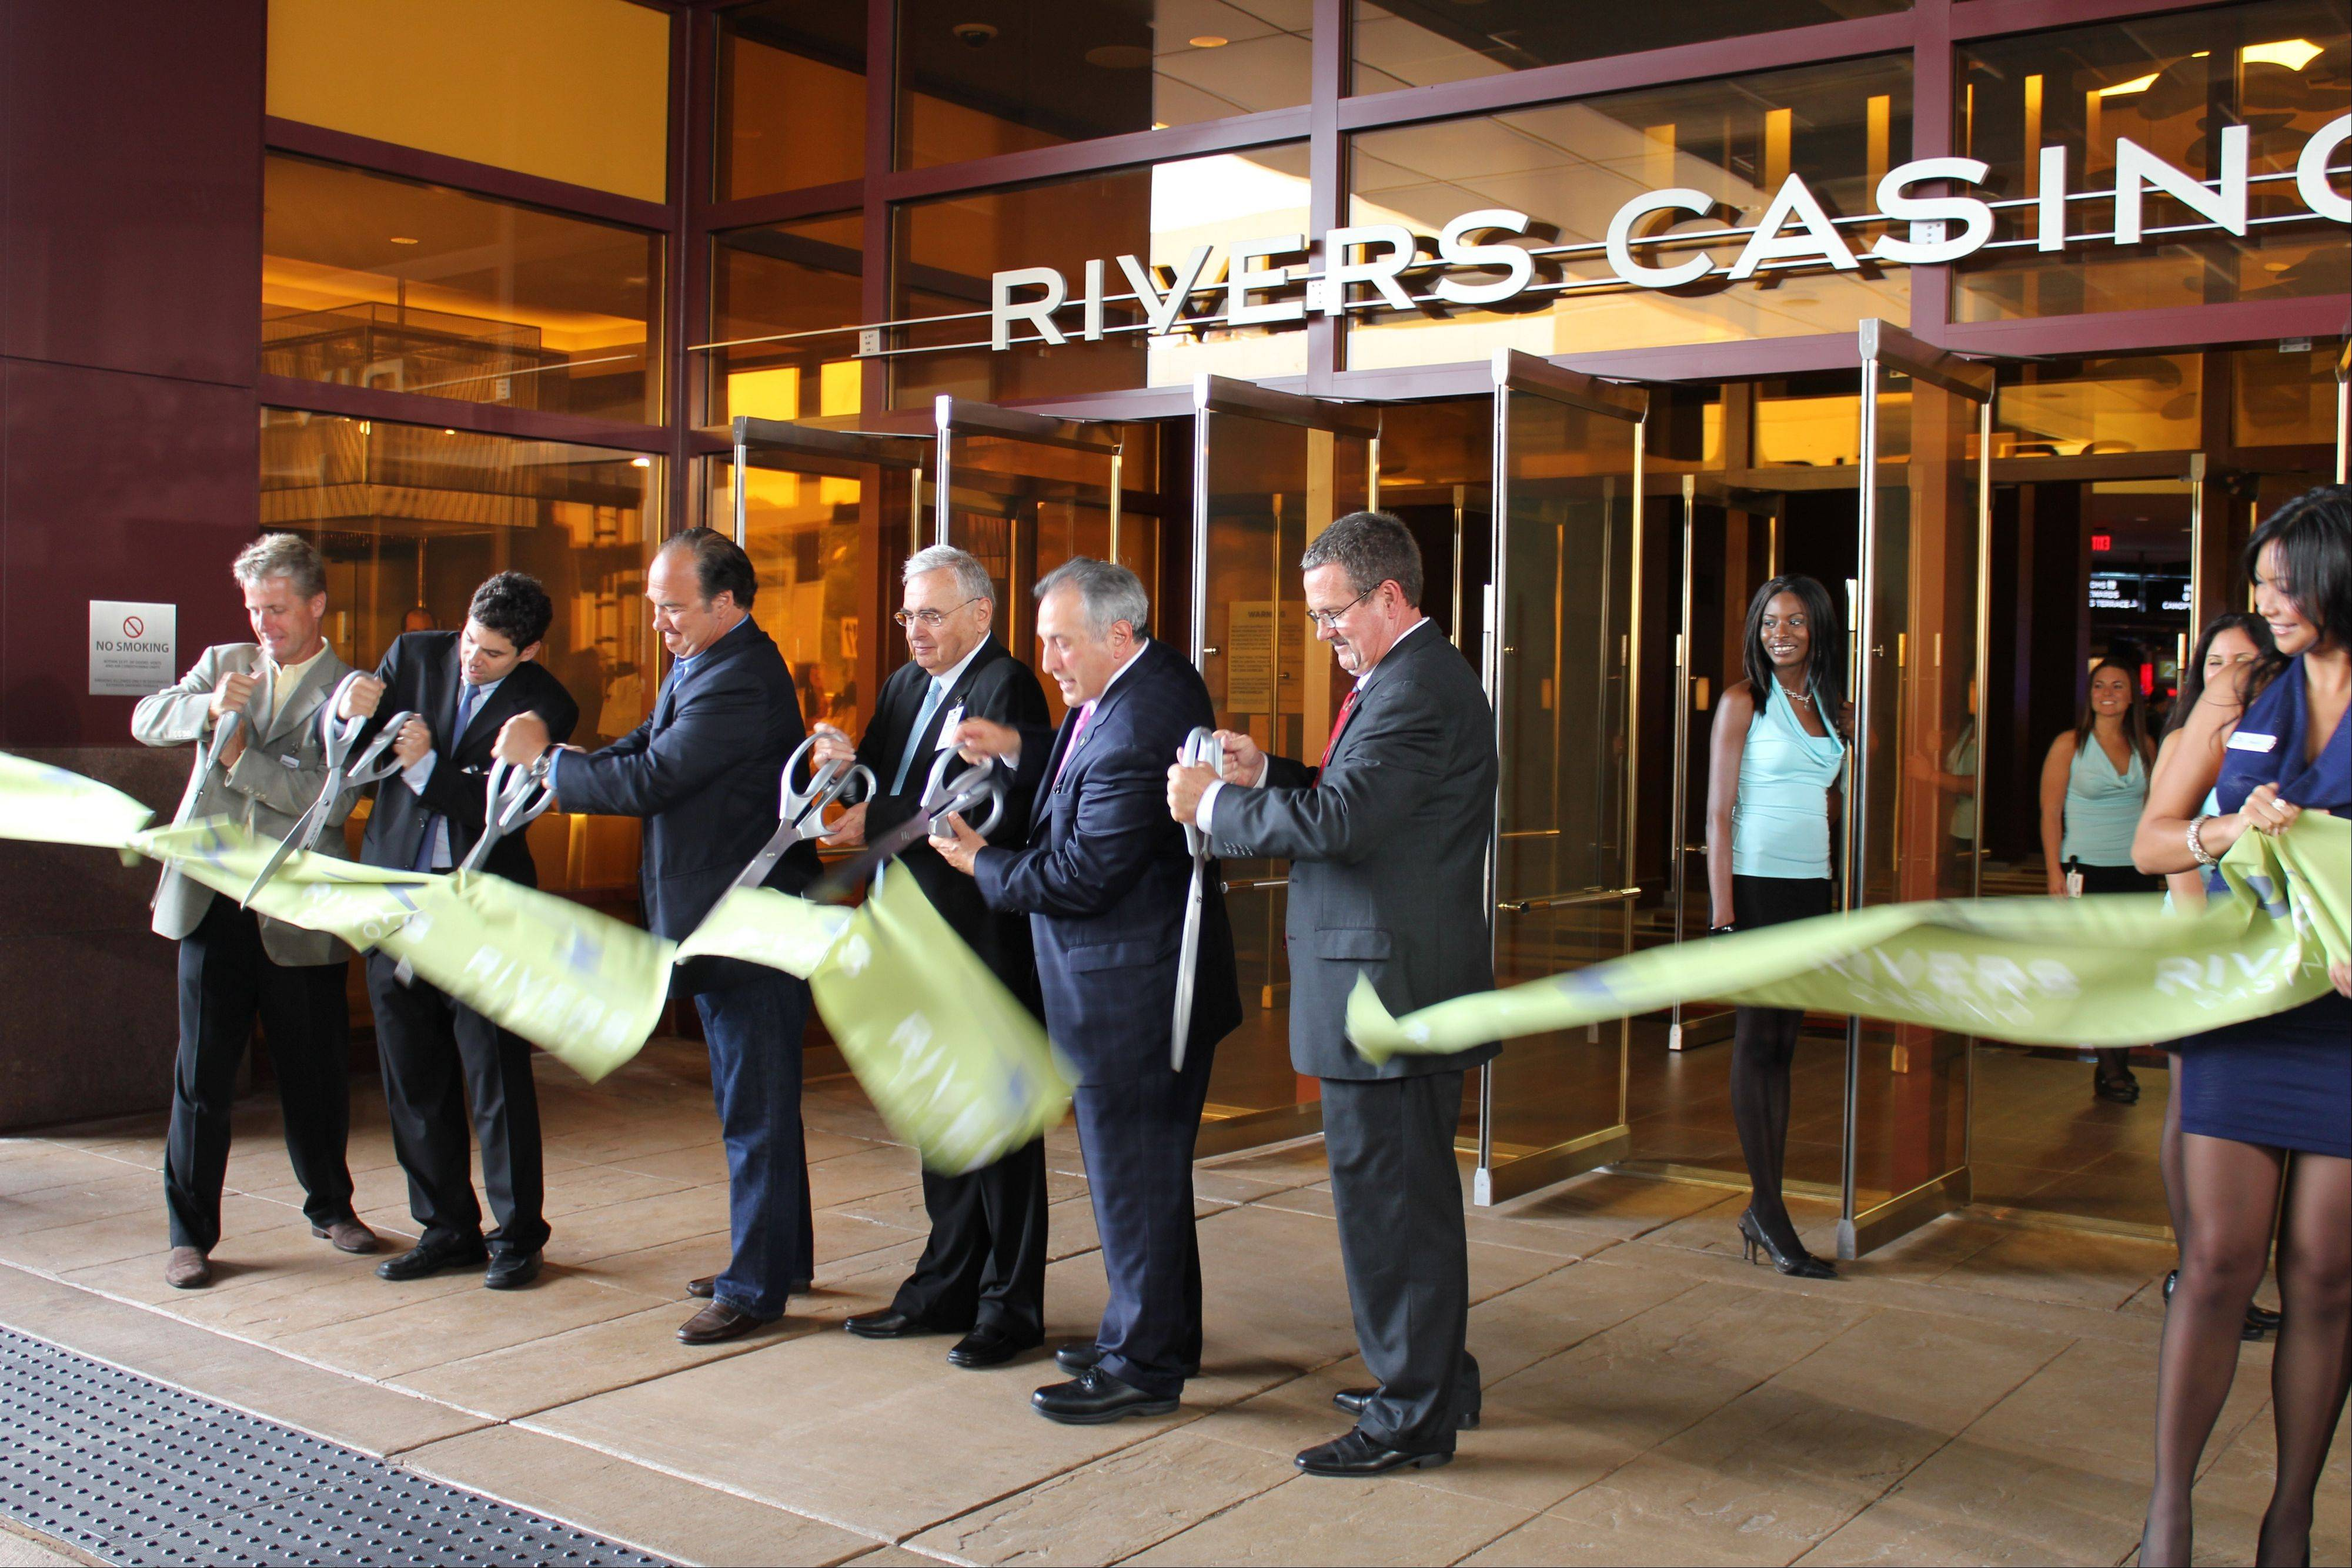 Des Plaines officials, actor Jim Belushi, third from left, casino owner Neil Bluhm, fourth from left, and other dignitaries cut a ceremonial ribbon at today's grand opening of the Rivers Casino.